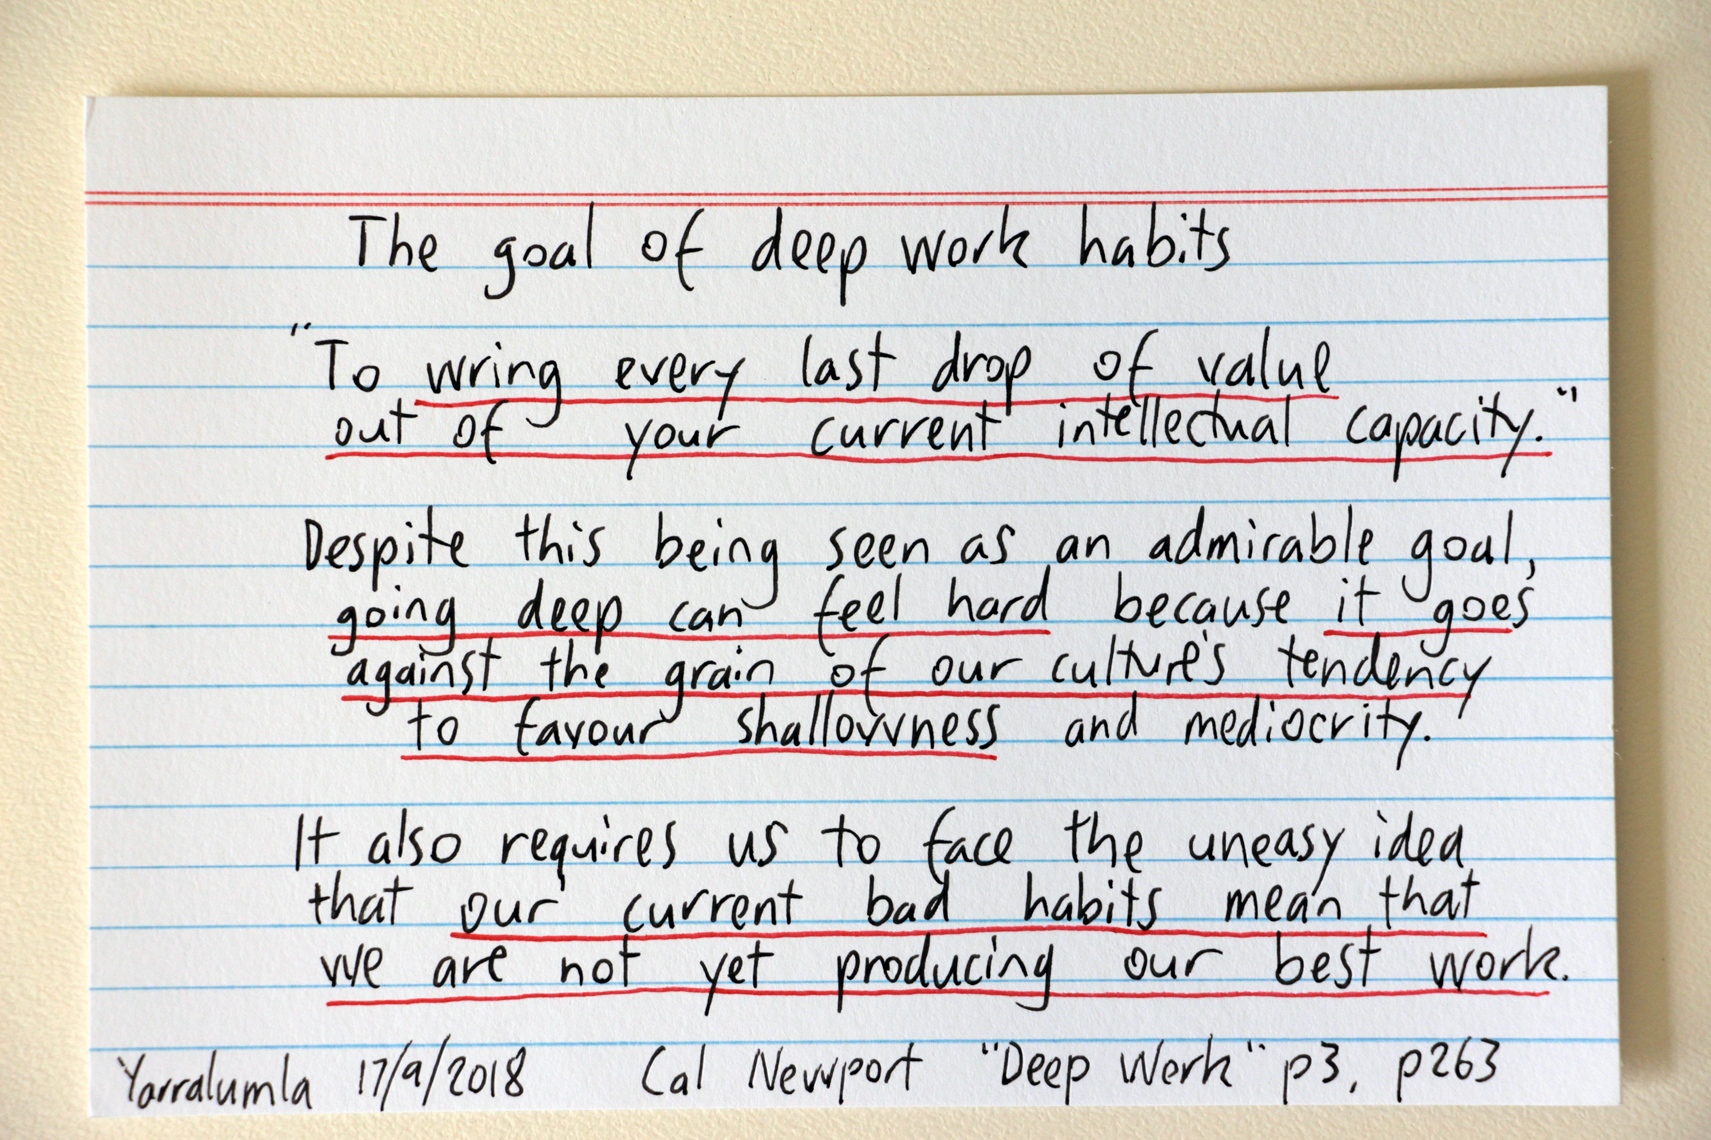 """The goal of Deep Work habits - wring maximum value from your current intellectual capacity"""" - Cal Newport quote"""